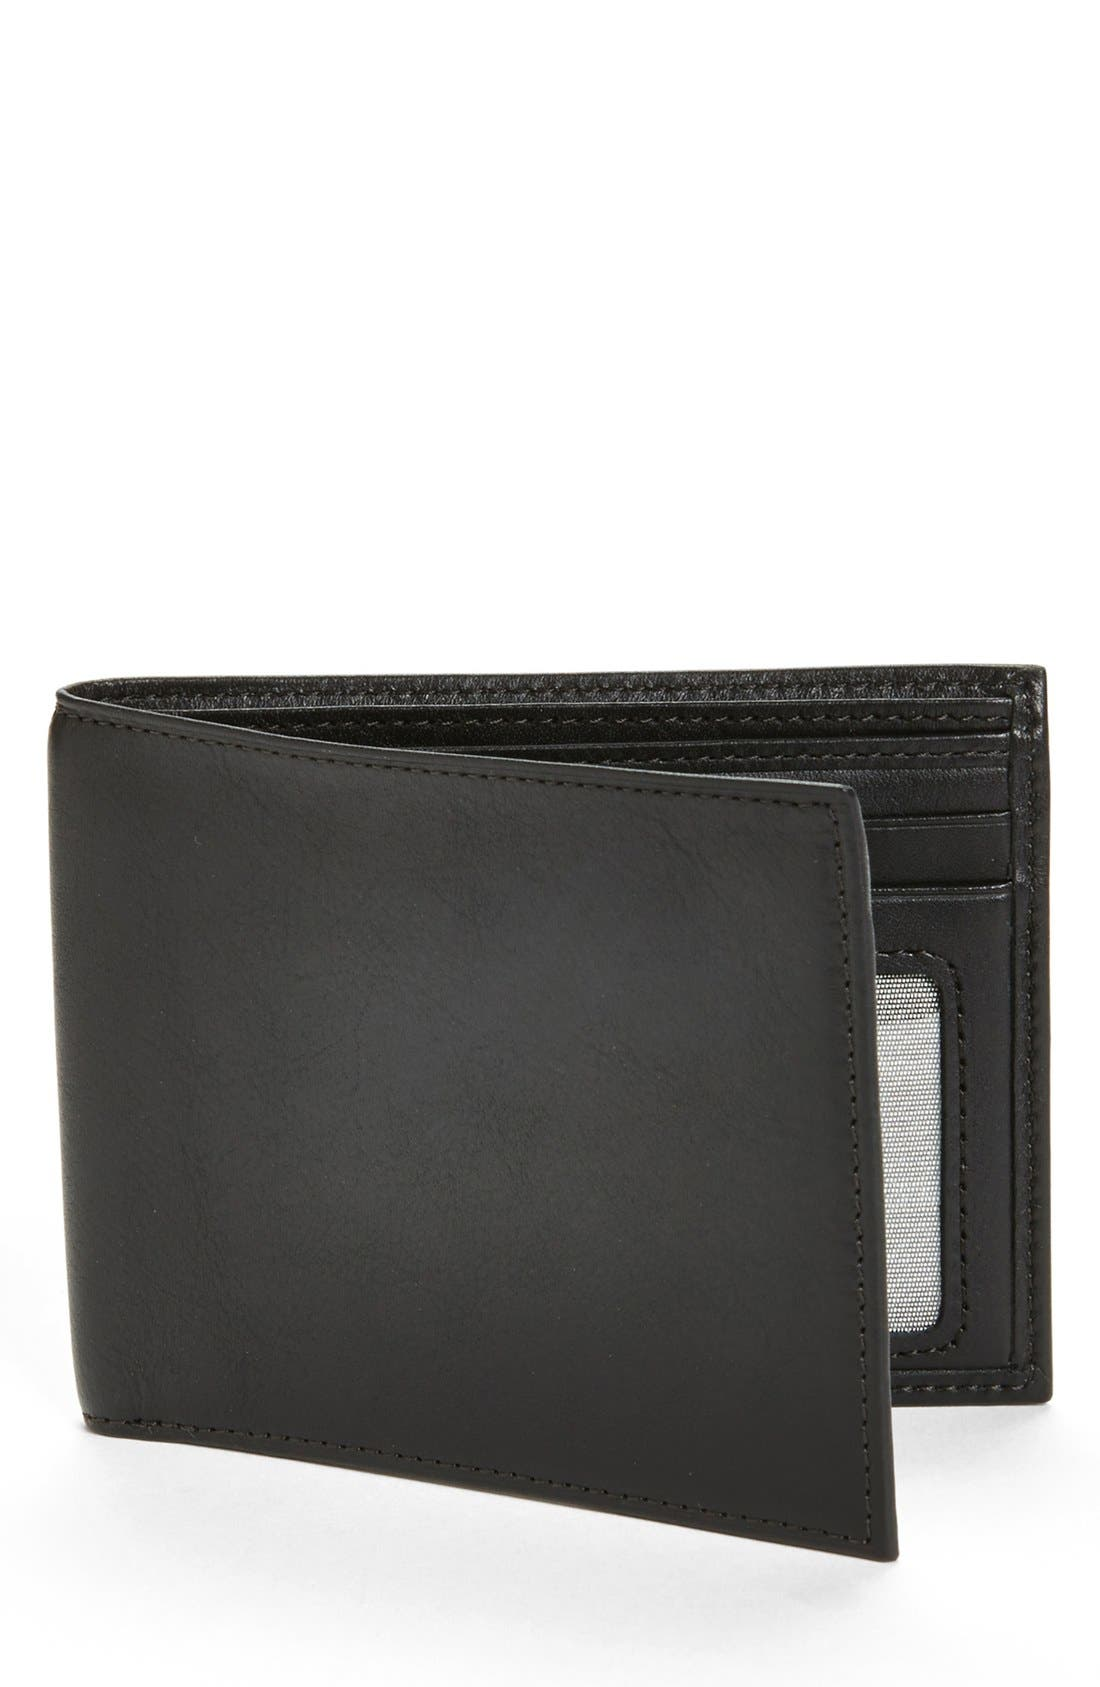 Alternate Image 1 Selected - Bosca 'Executive ID' Nappa Leather Wallet